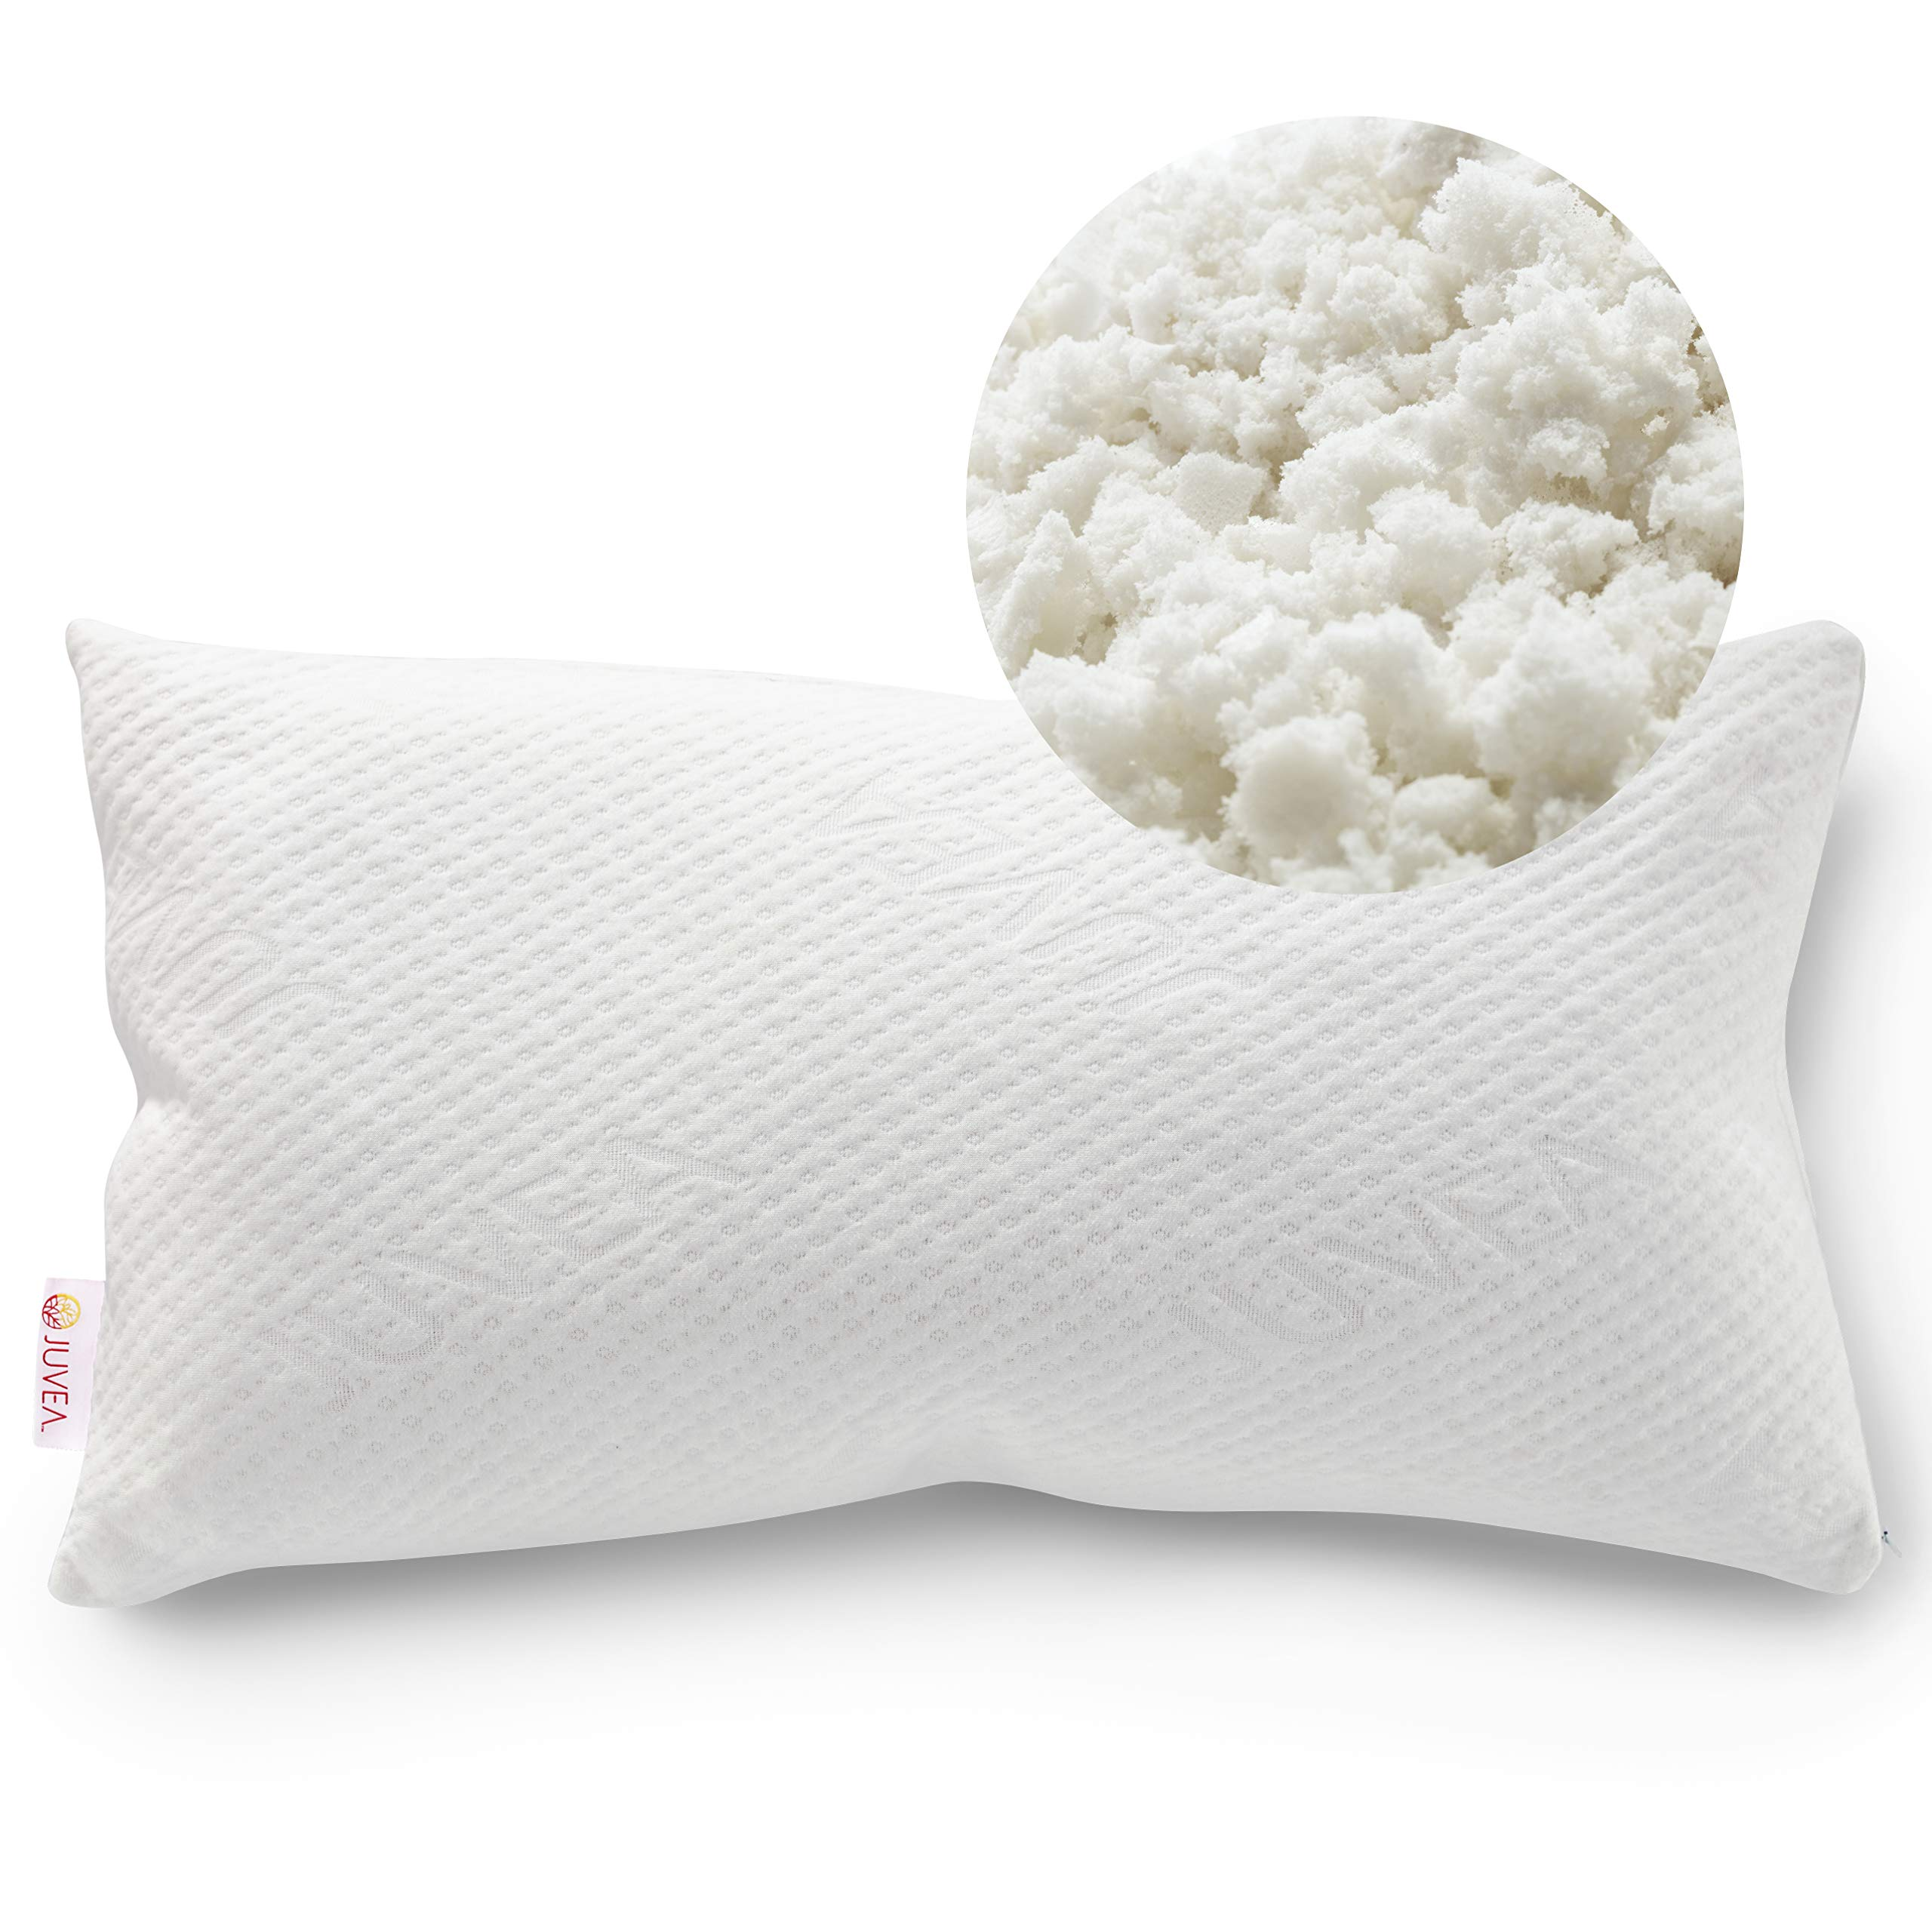 JUVEA 100% Natural, Adjustable Talalay Latex Down Alternative Pillow, 100% Certified Organic Cotton Breathable Cover, Best Pillow to Support Head and Neck, King Size - ComforFill – Made in USA